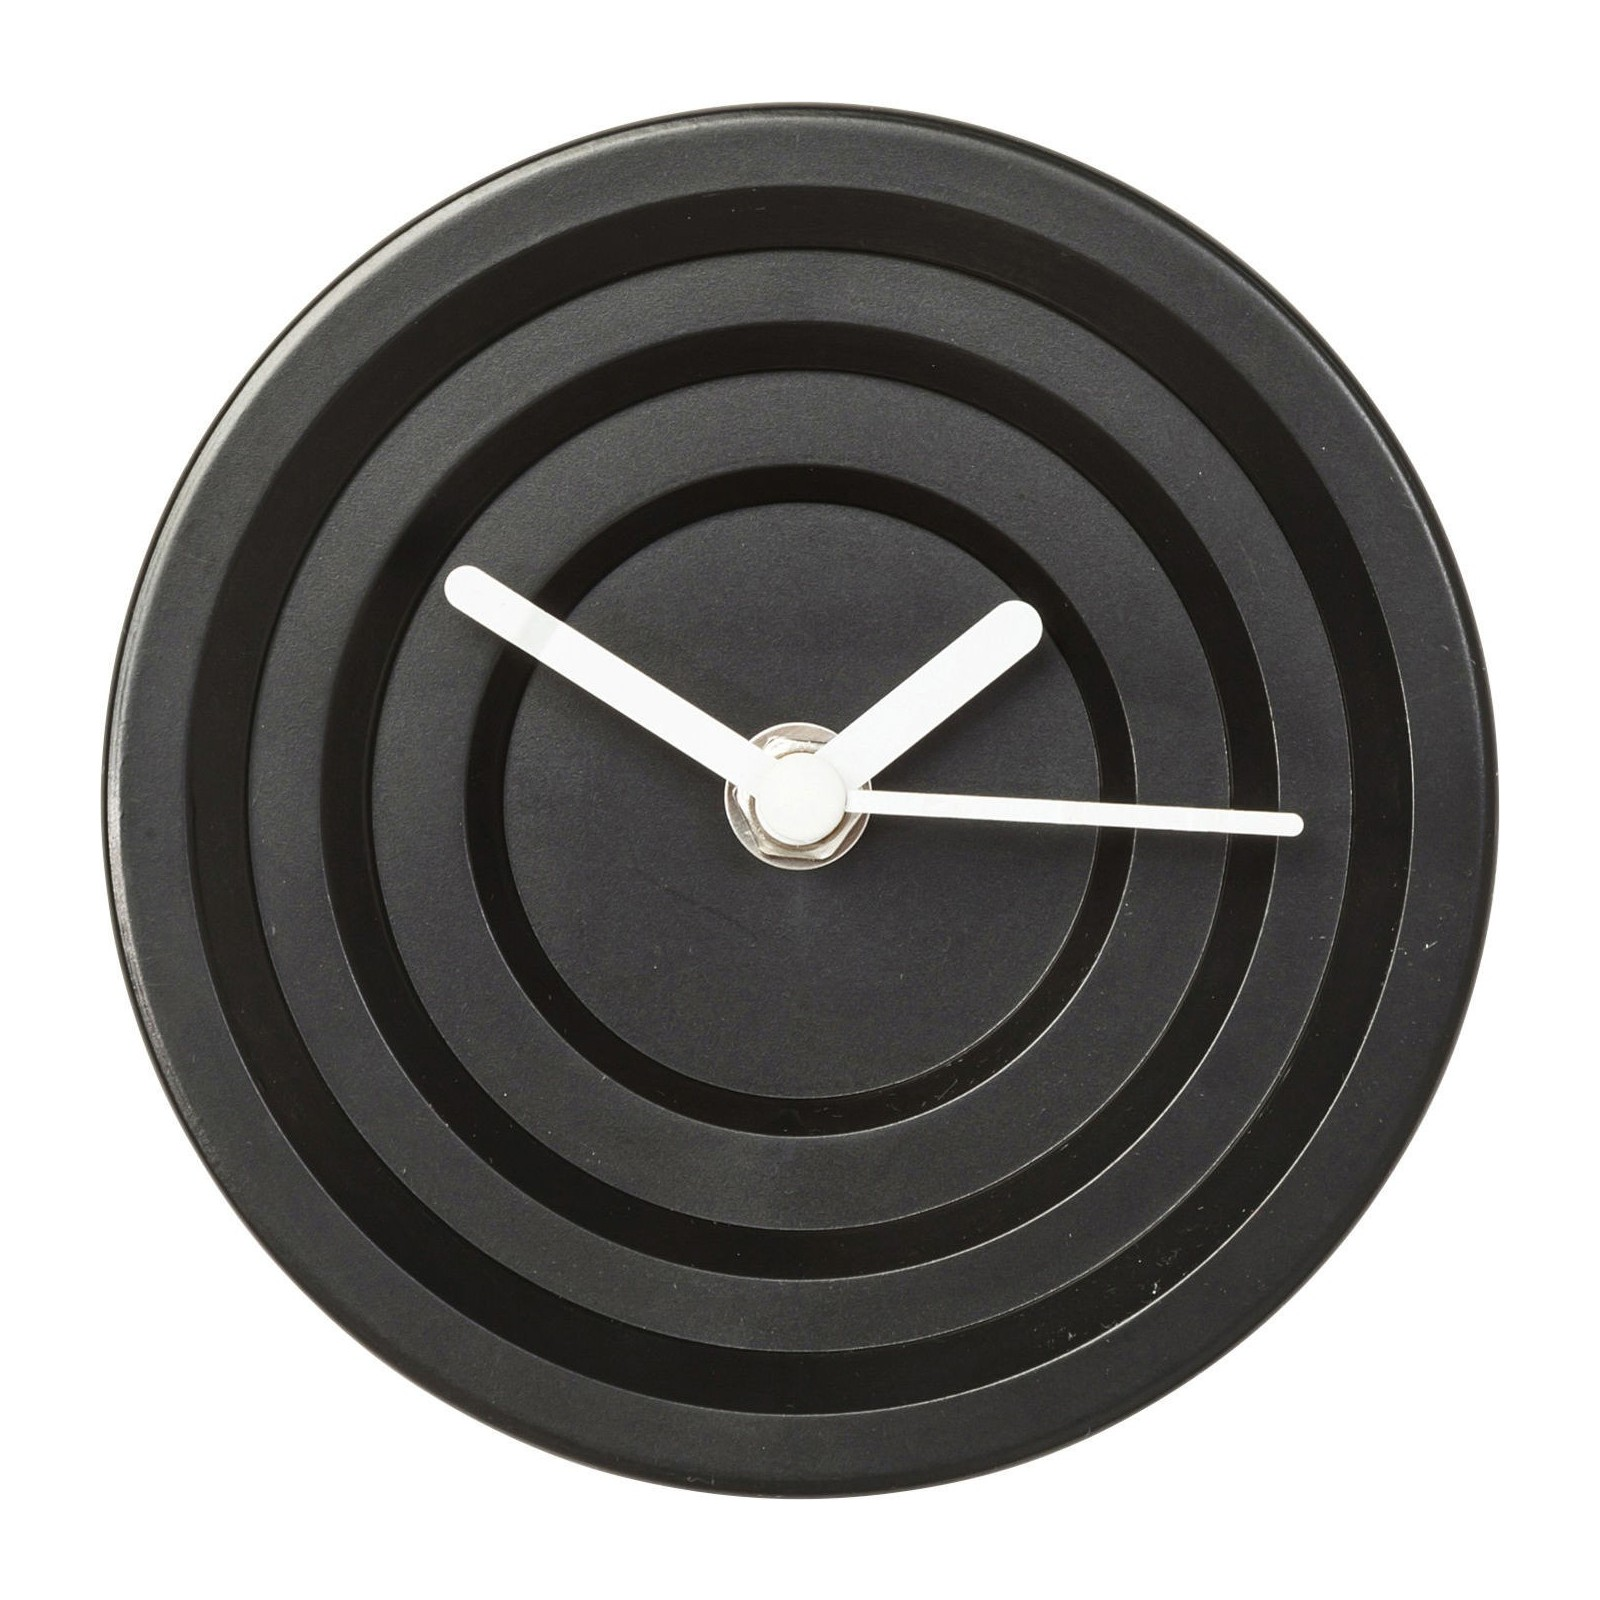 horloge murale morris 13cm kare design. Black Bedroom Furniture Sets. Home Design Ideas